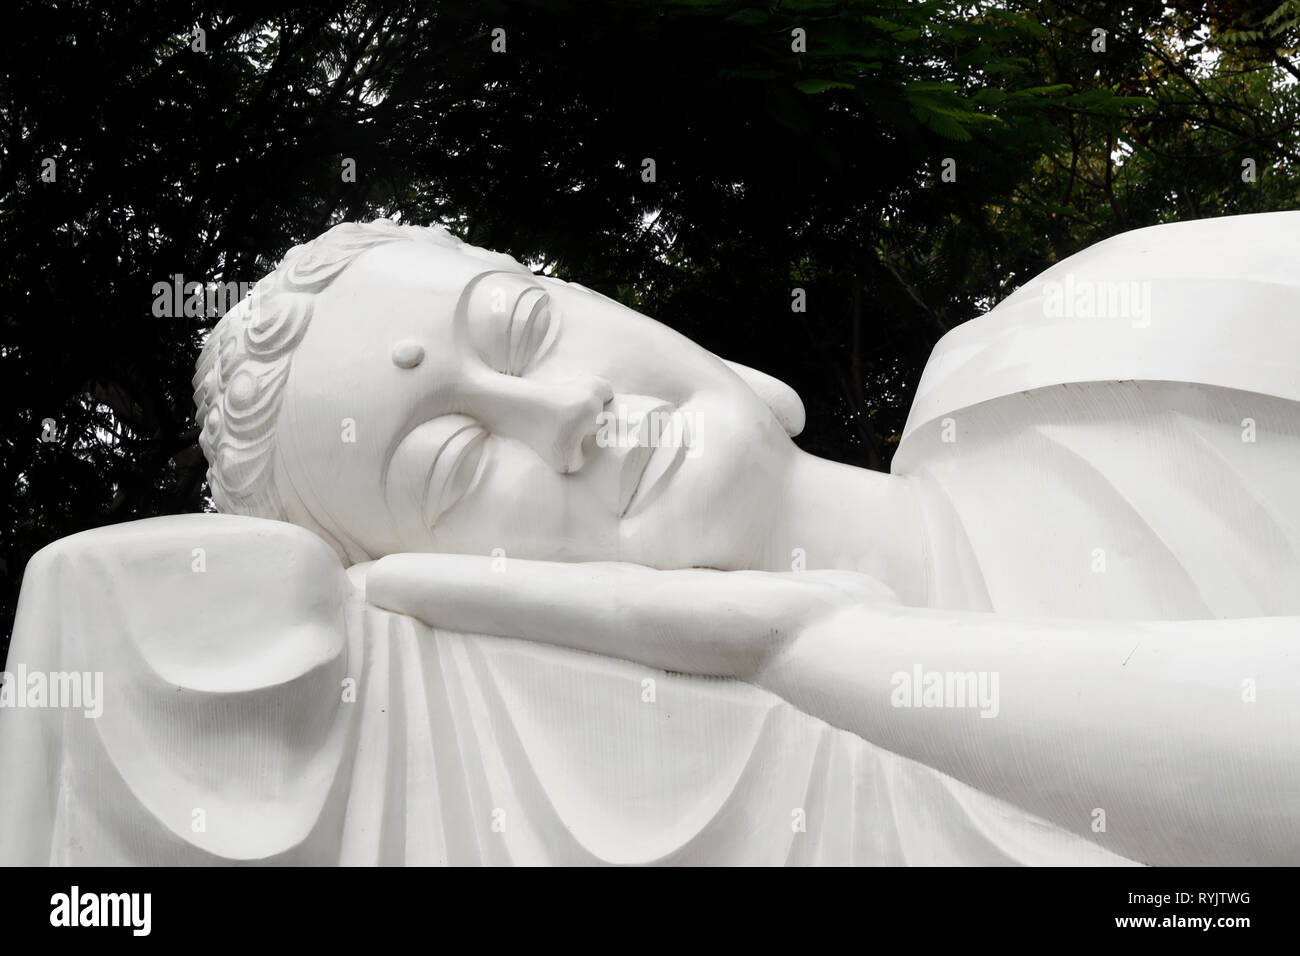 Ho Phap buddhist temple.  The final Nirvana. The Buddha entered into meditation, deeper and deeper. And then he passed away.   Vung Tau. Vietnam. - Stock Image